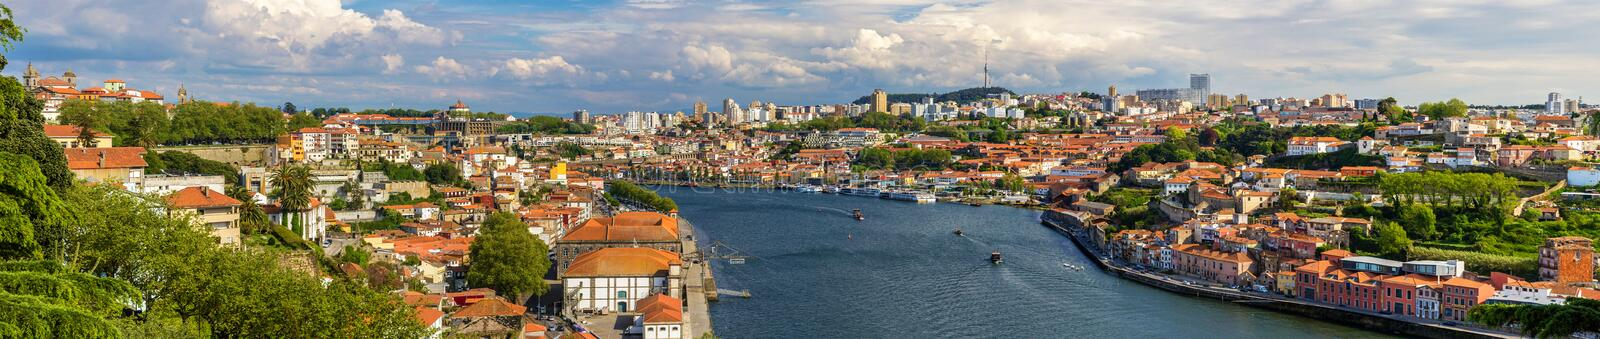 Panorama of Porto and the Douro river royalty free stock image